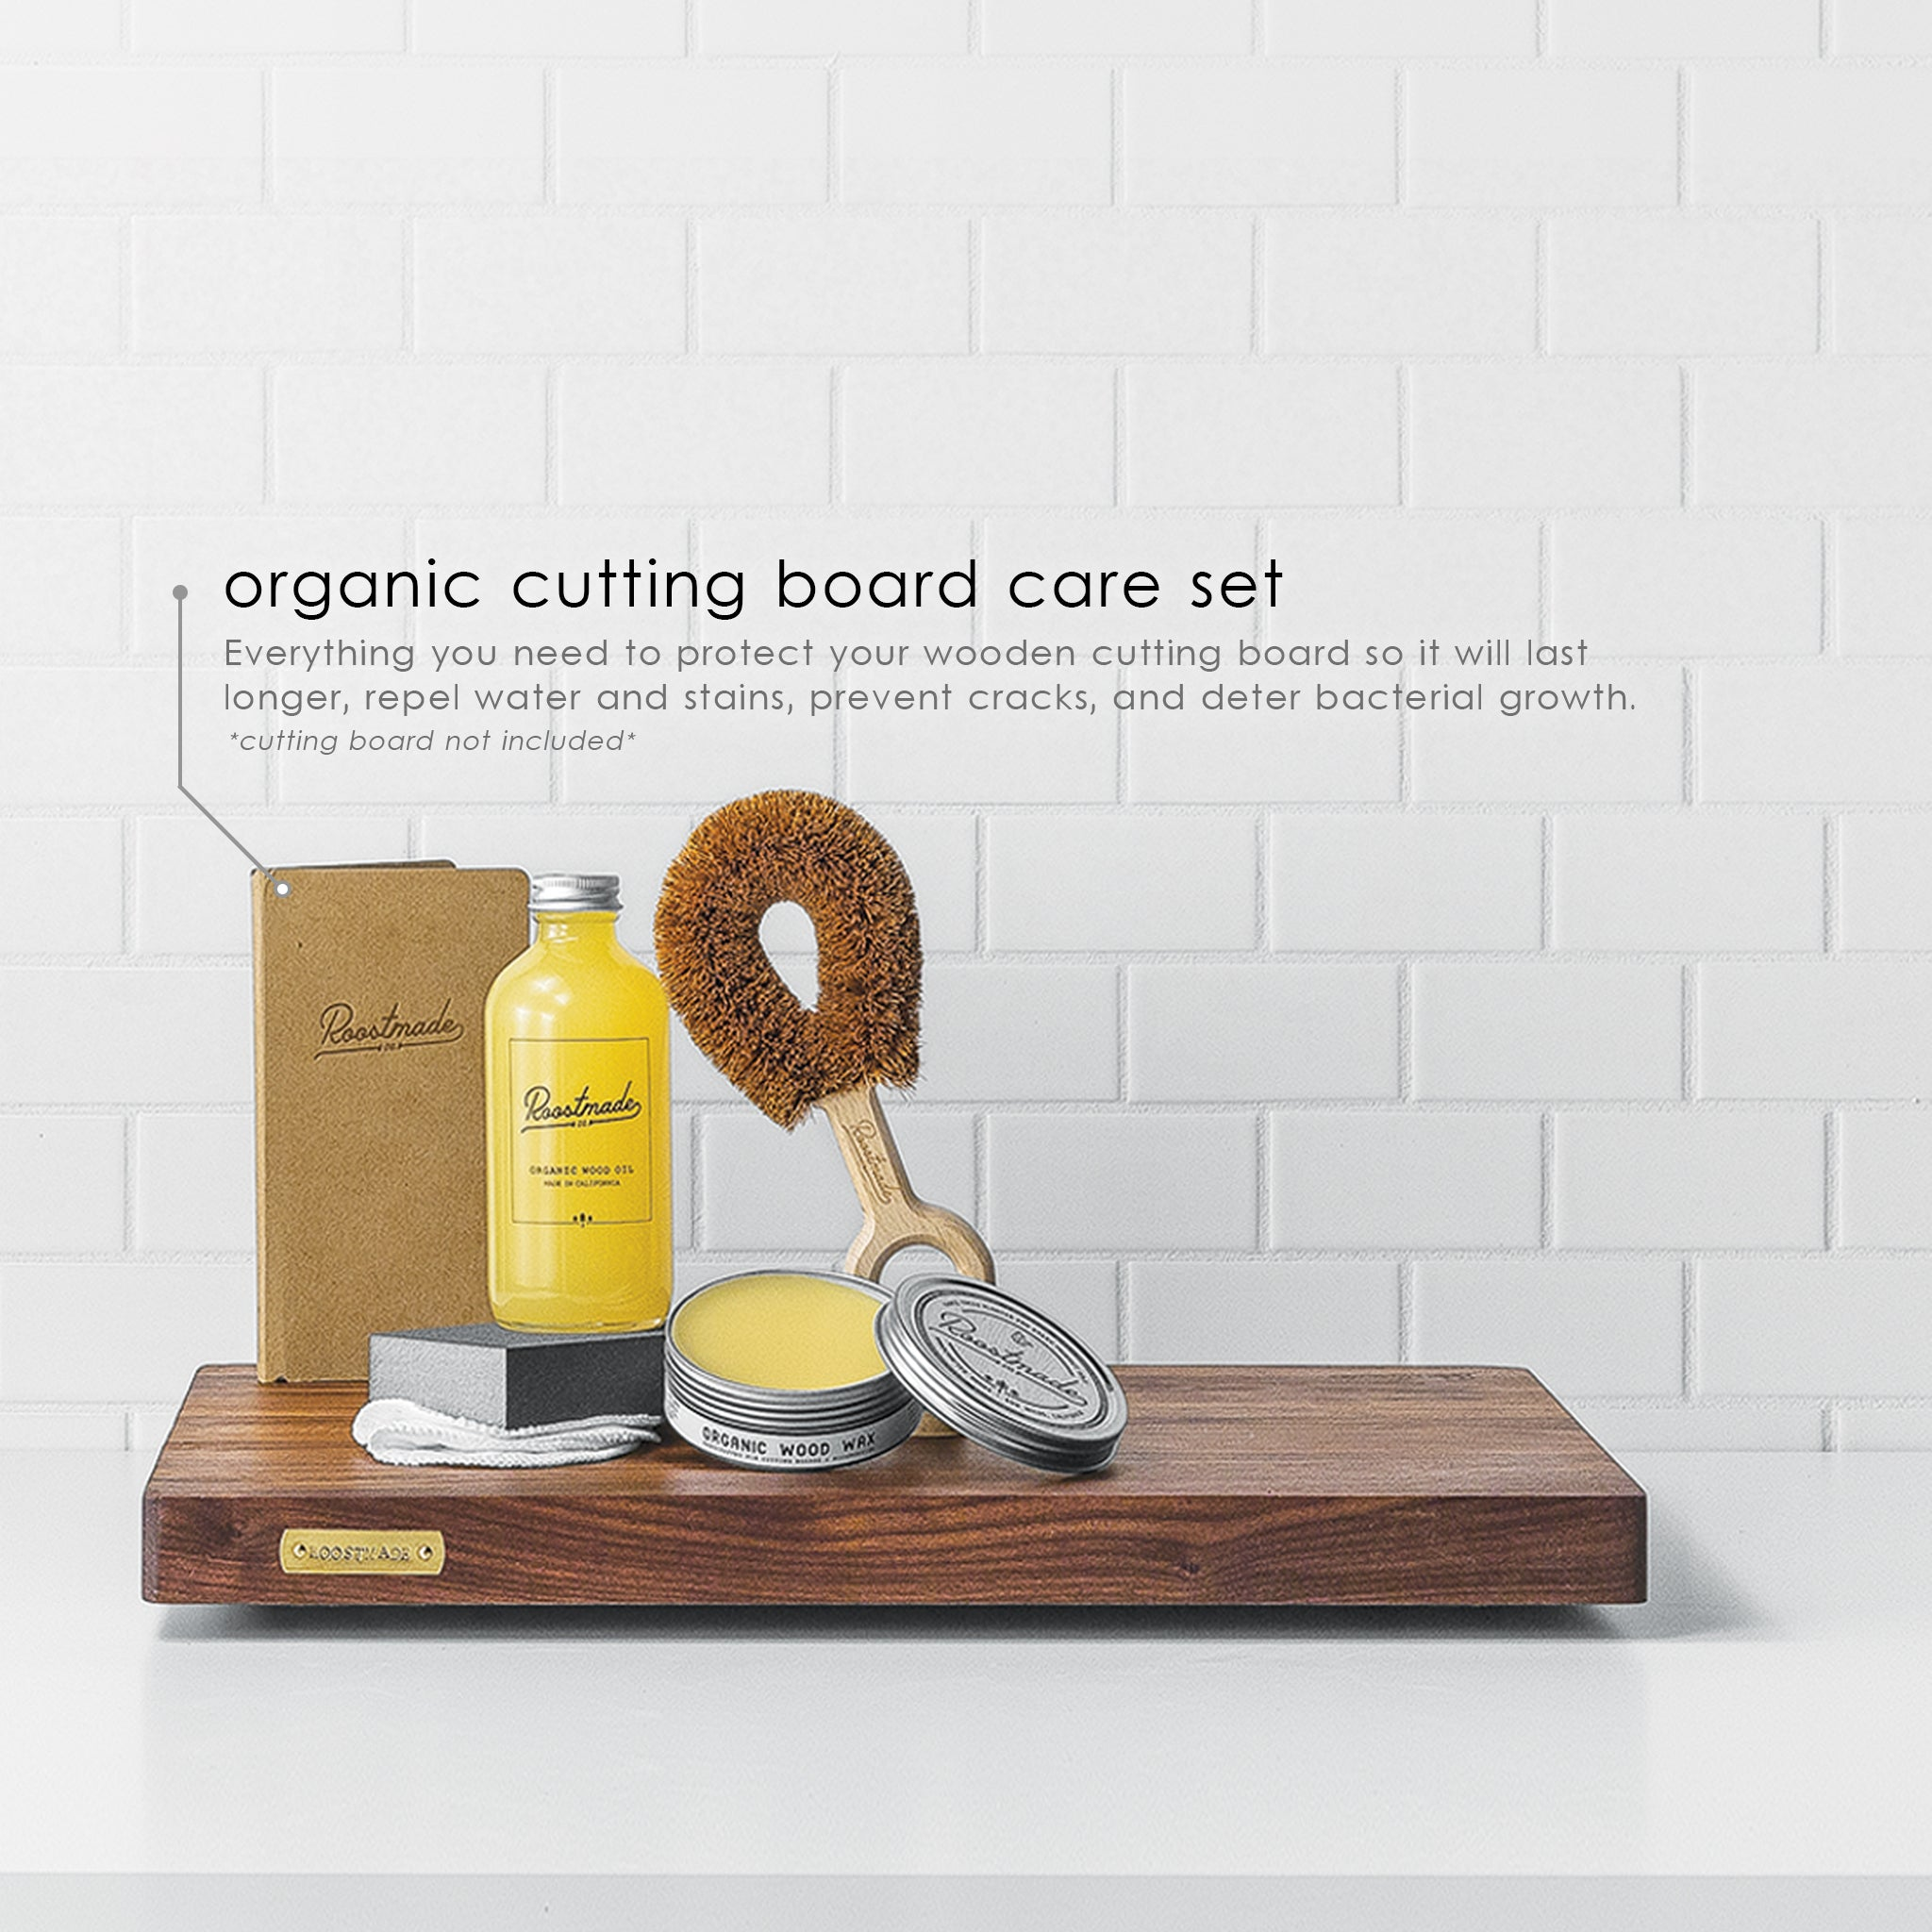 Organic Cutting Board Care Set